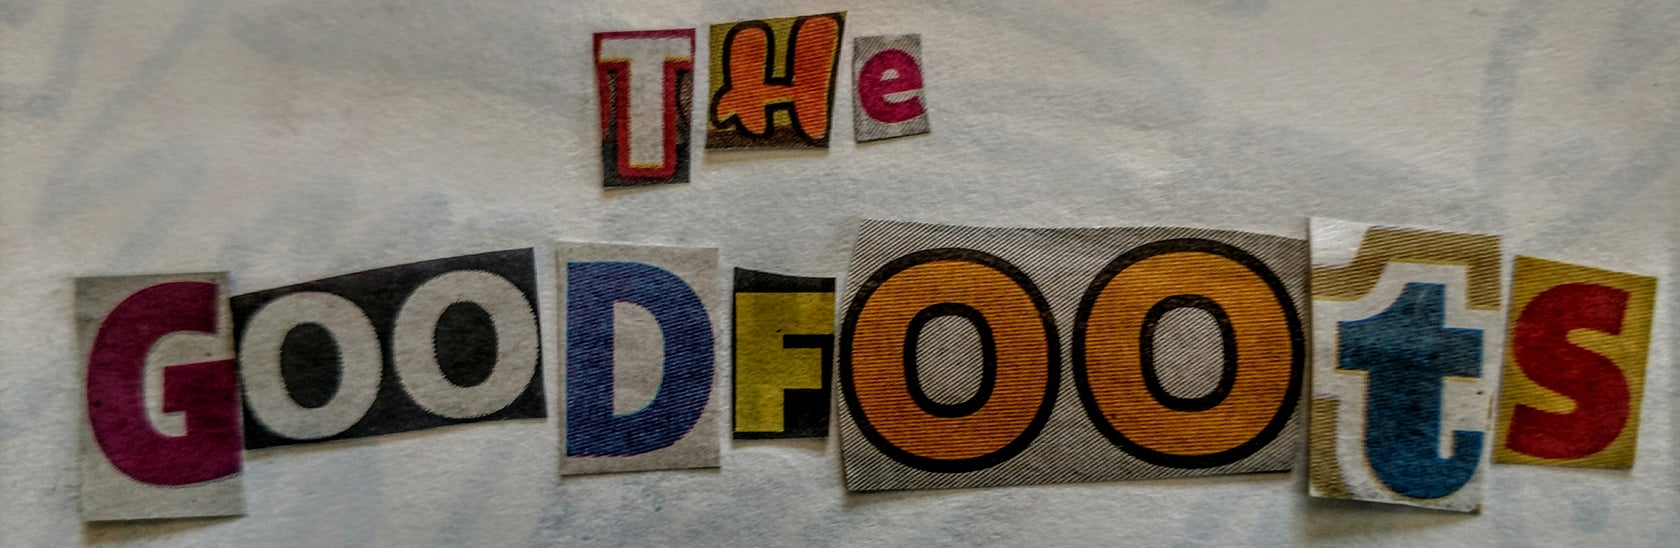 The Goodfoots